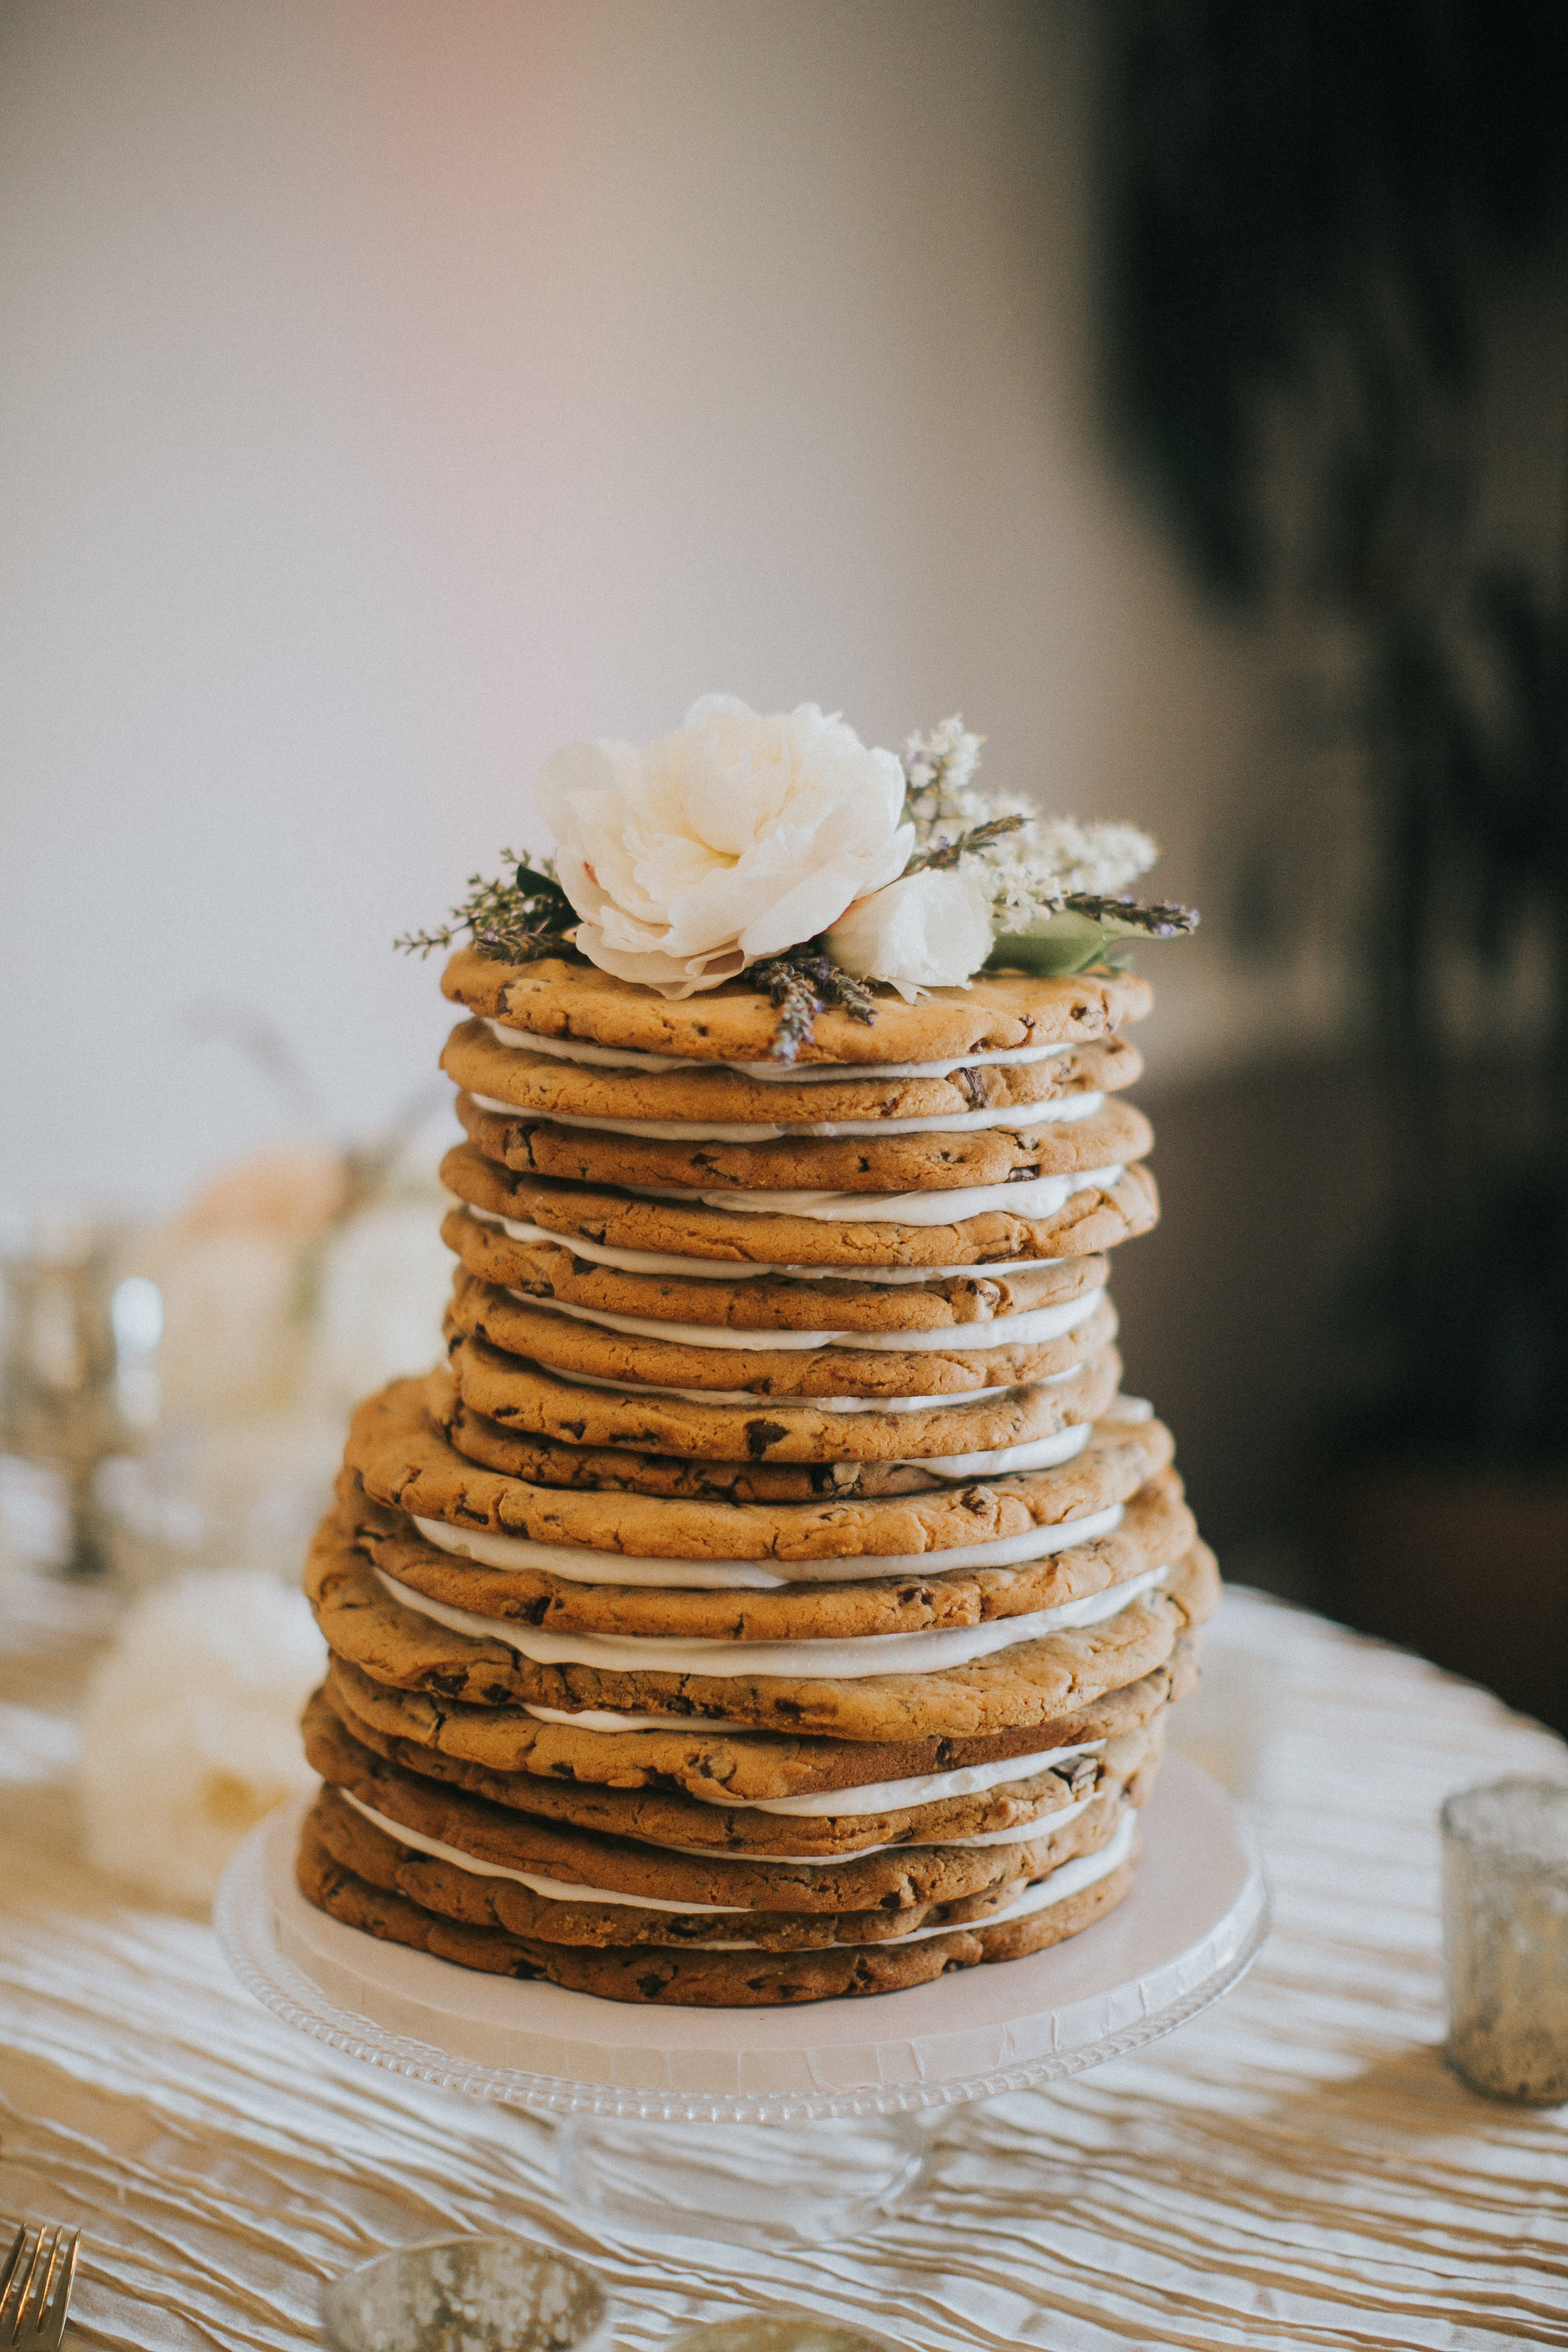 odlums biscuit wedding cake seacliff country club stop and stare events 17972